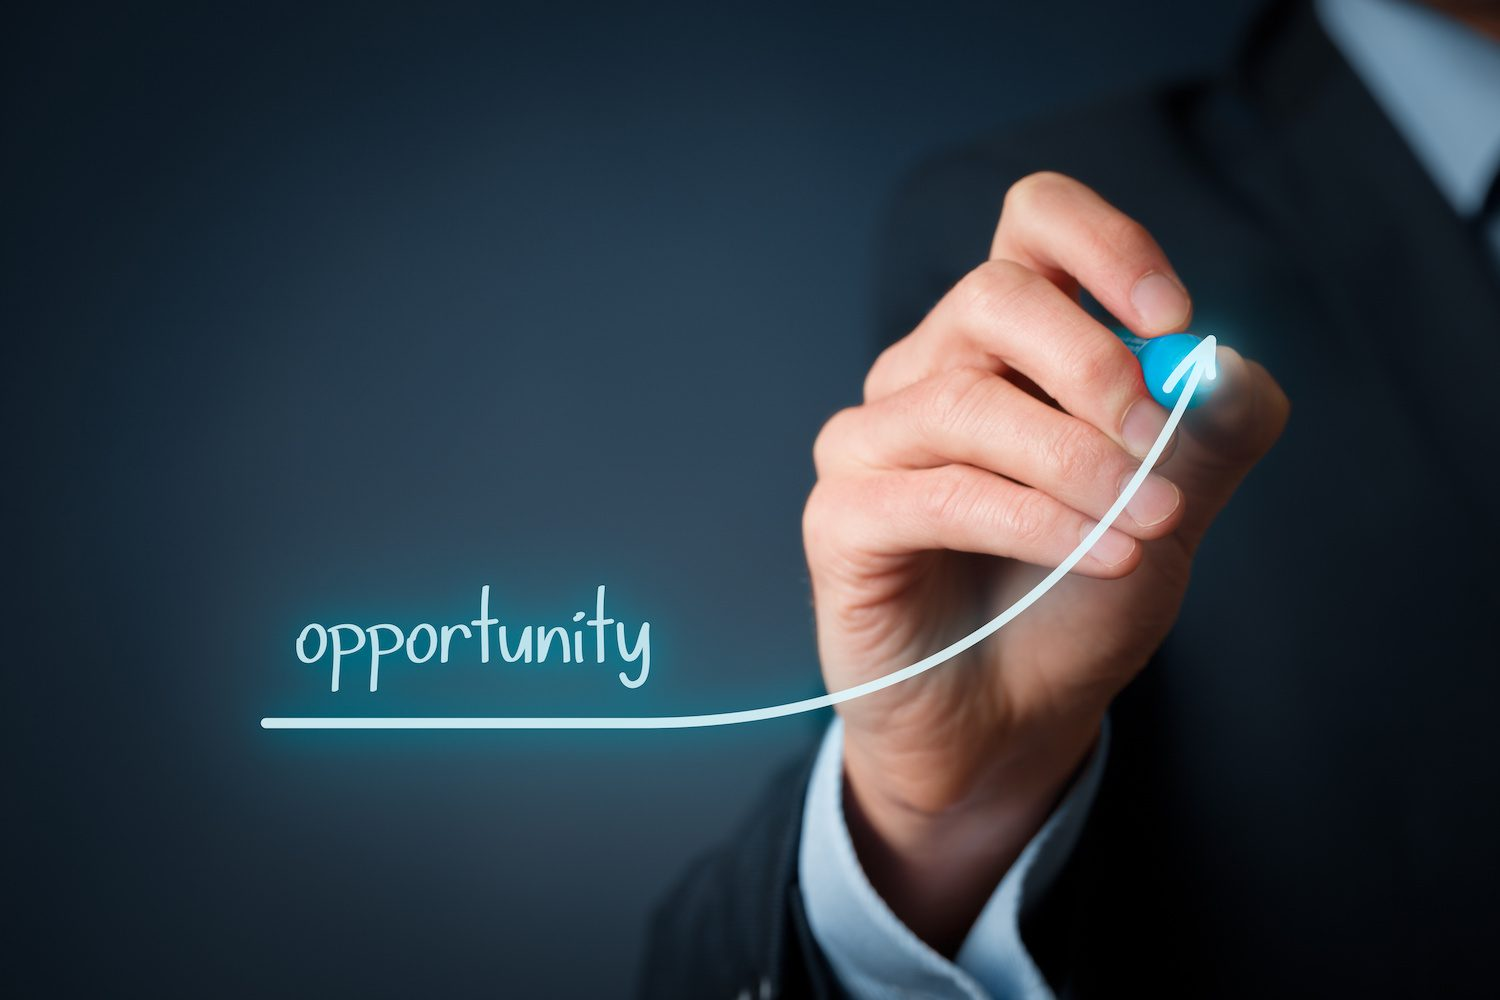 Increase opportunity